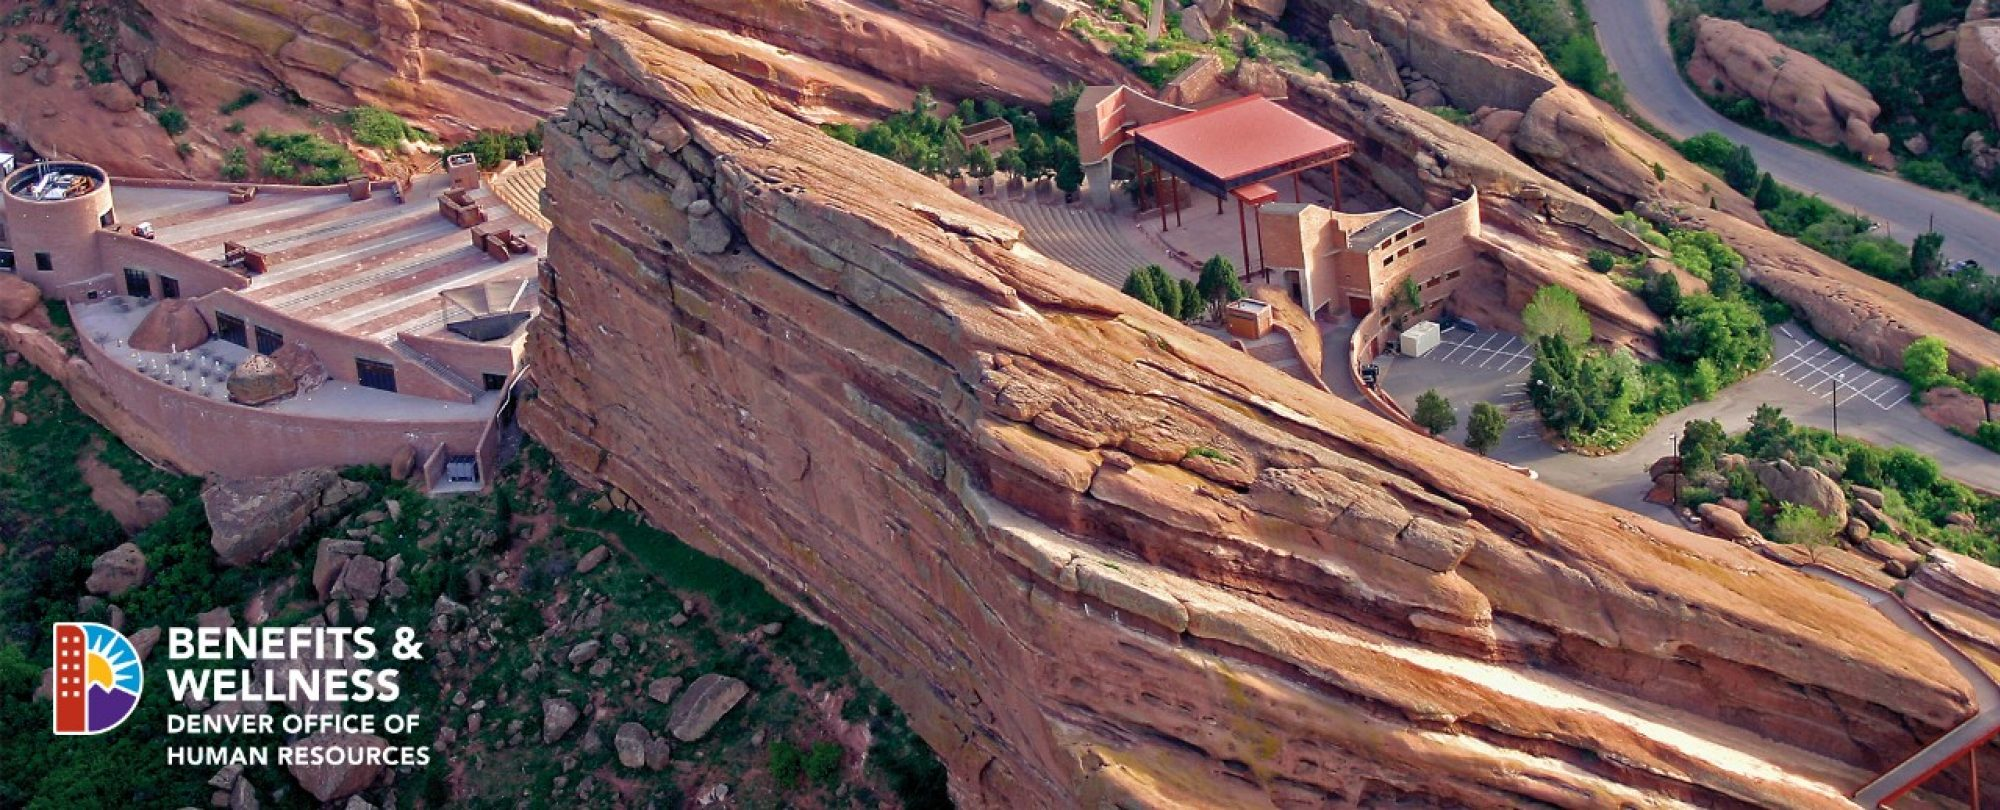 Benefits & Wellness at Red Rocks